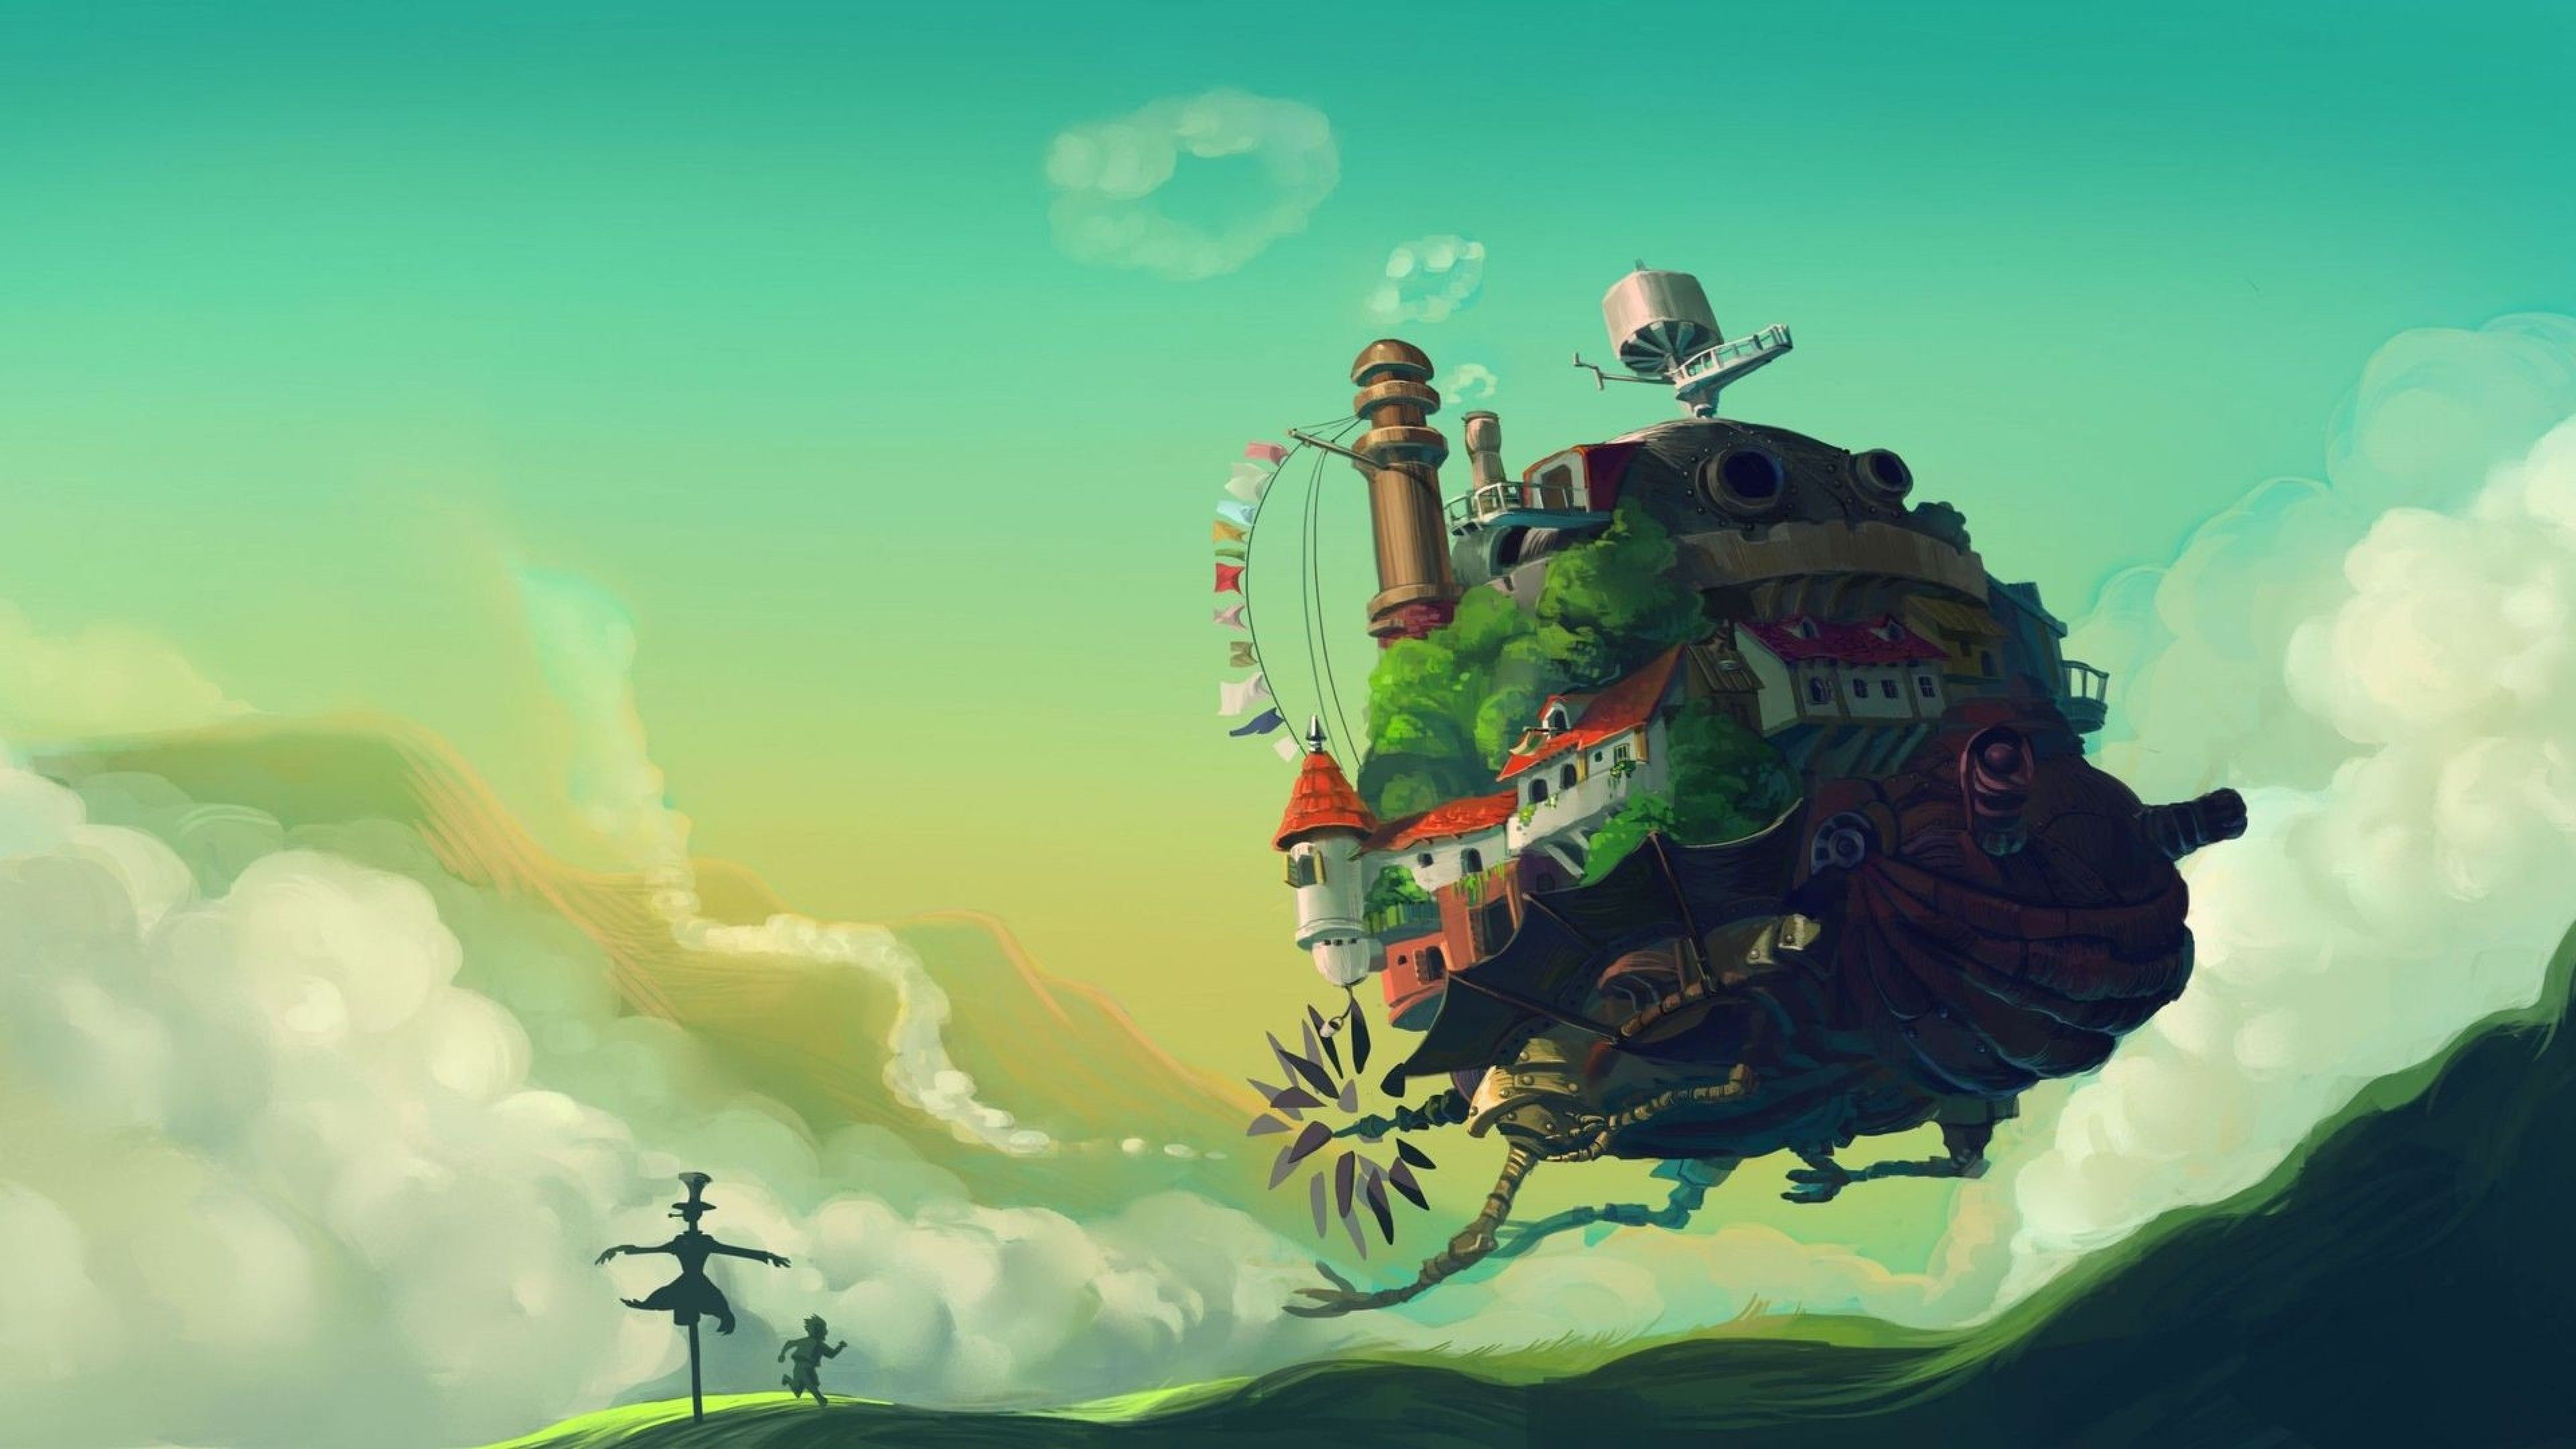 Studio Ghibli Desktop Wallpapers Top Free Studio Ghibli Desktop Backgrounds Wallpaperaccess